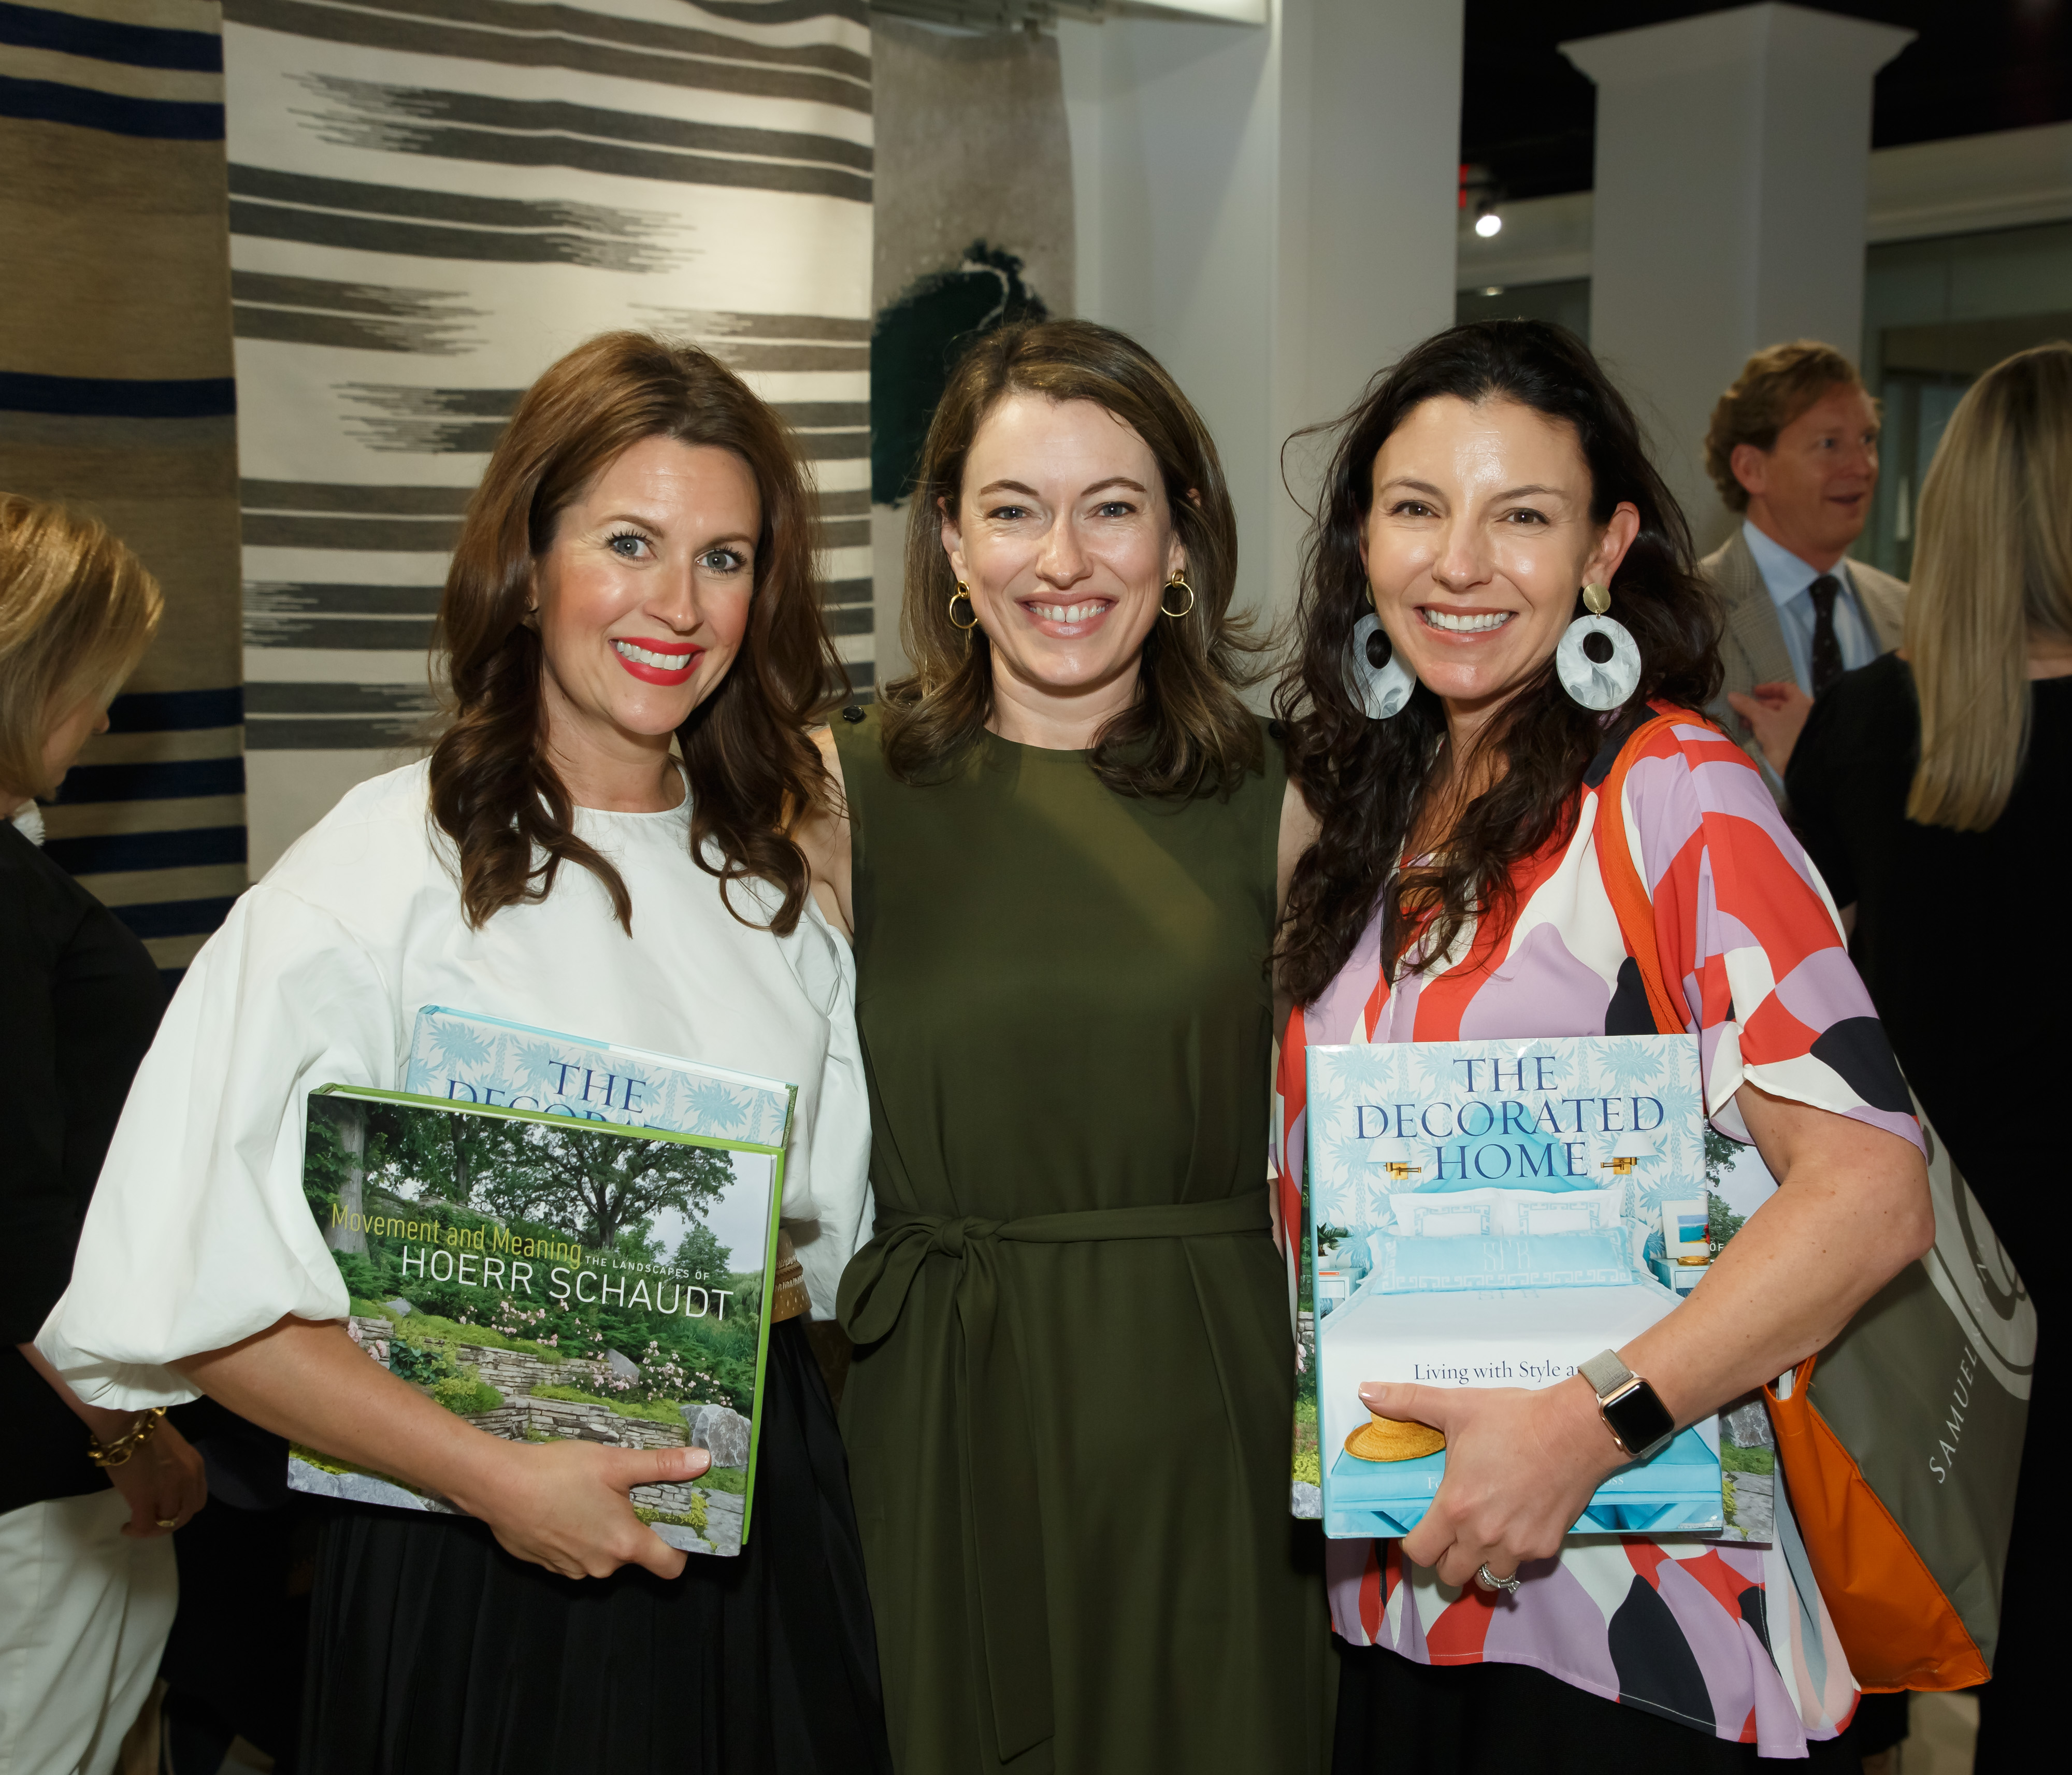 Lauren DeLoach, Steele Marcoux and Jessica Bradley at a book signing event for both 'The Decorated Home' and 'Movement'